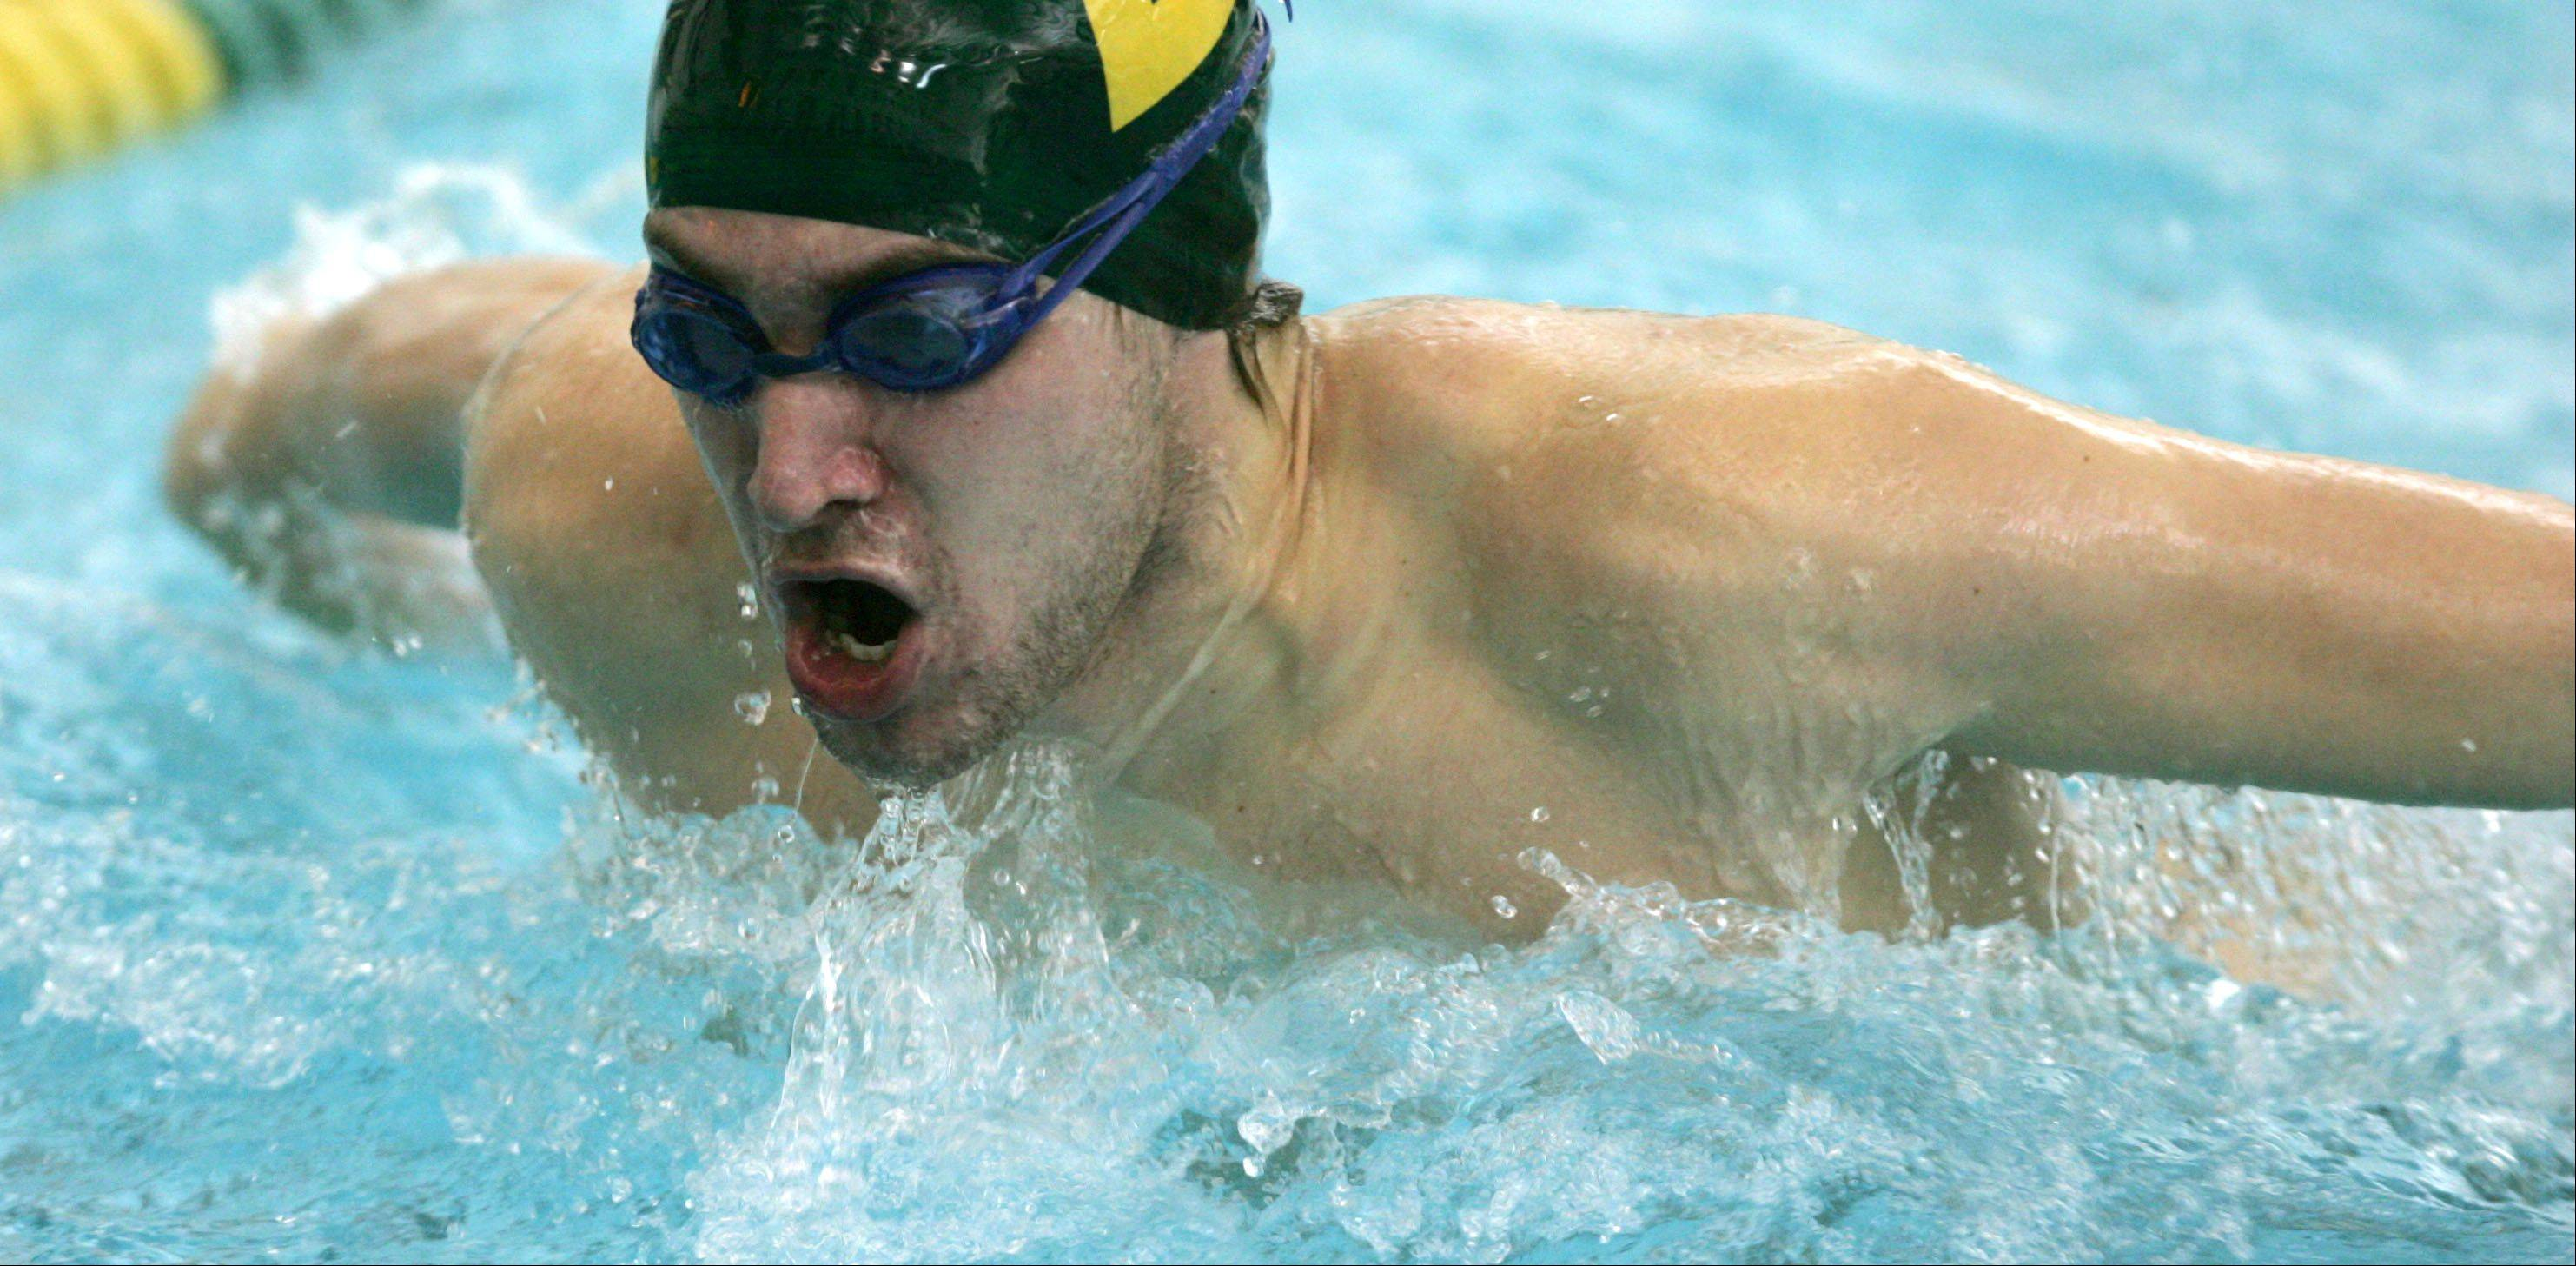 Waubonsie Valley's Joe Poletto swims the butterfly during the Waubonsie Valley High School Pentathlon boys swimming meet.